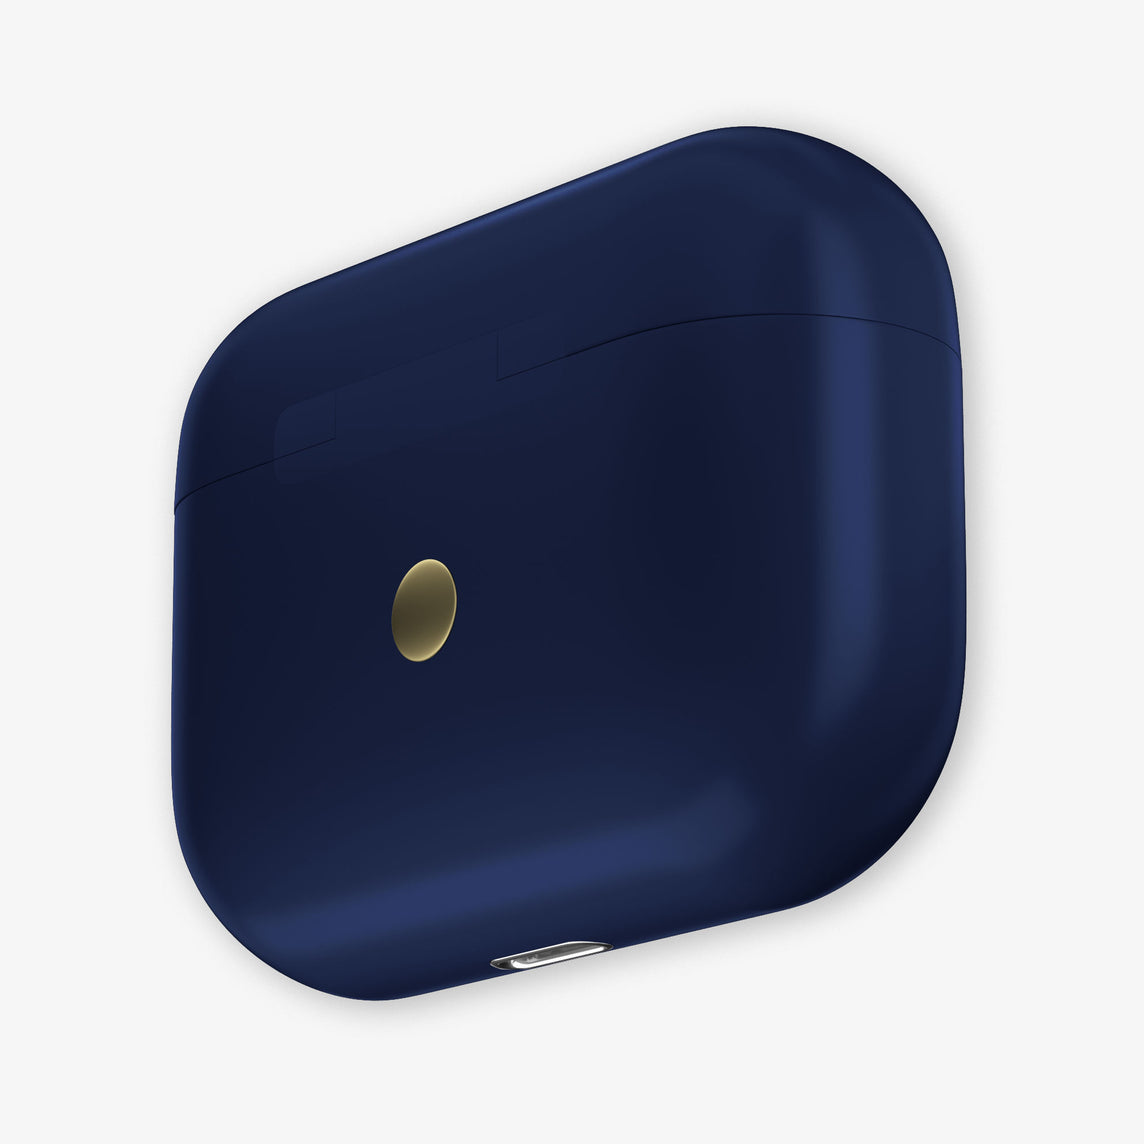 AirPods Pro Lacquer AirPods Pro | Navy Blue - Gold24k